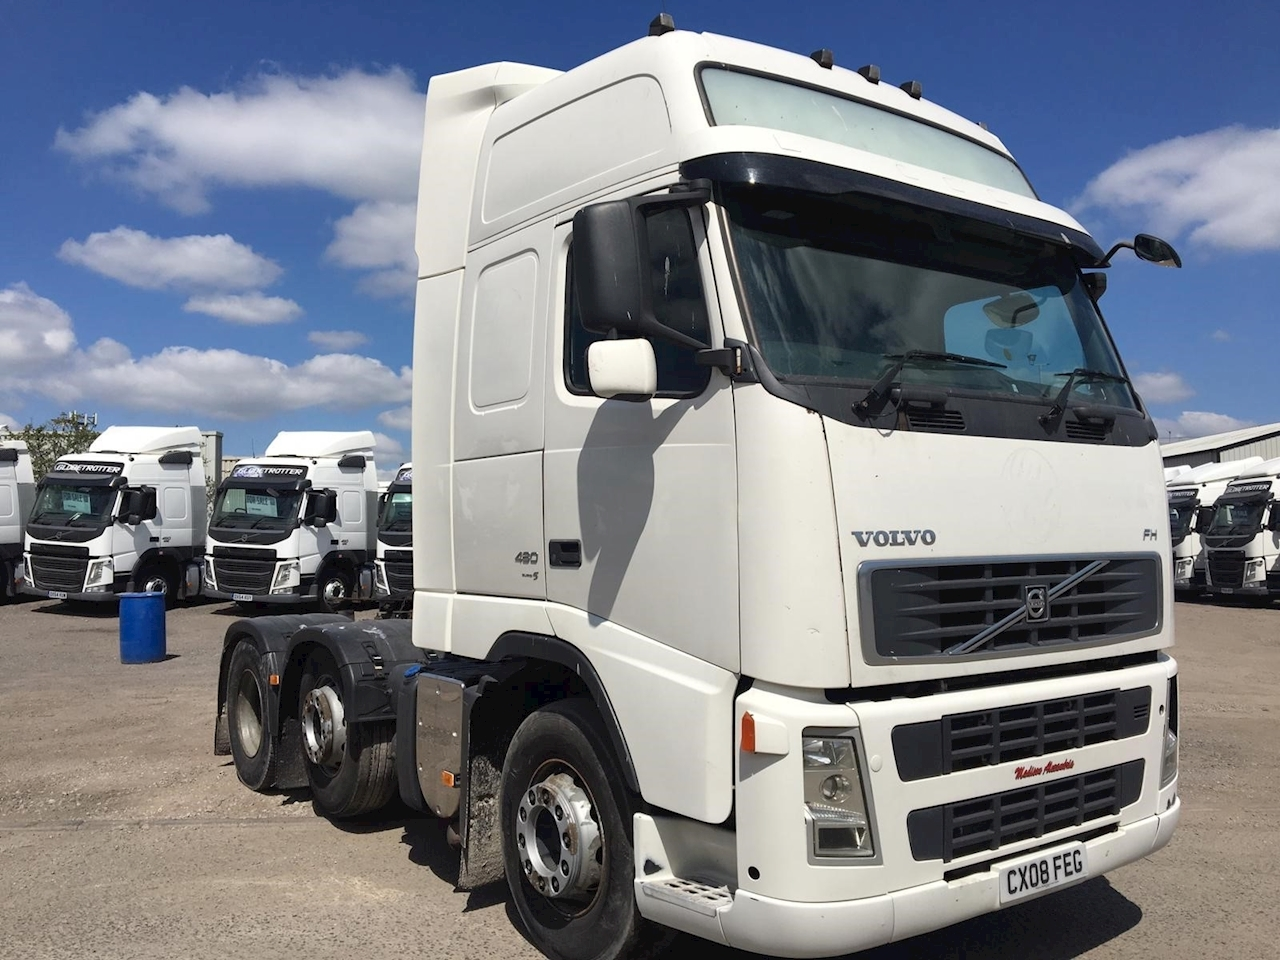 Volvo Fh Fh480 6X2 L2h3 Hrs E5 Ex Gorry 12.8 2dr Tractor (Heavy Haulage) I-Shift Diesel